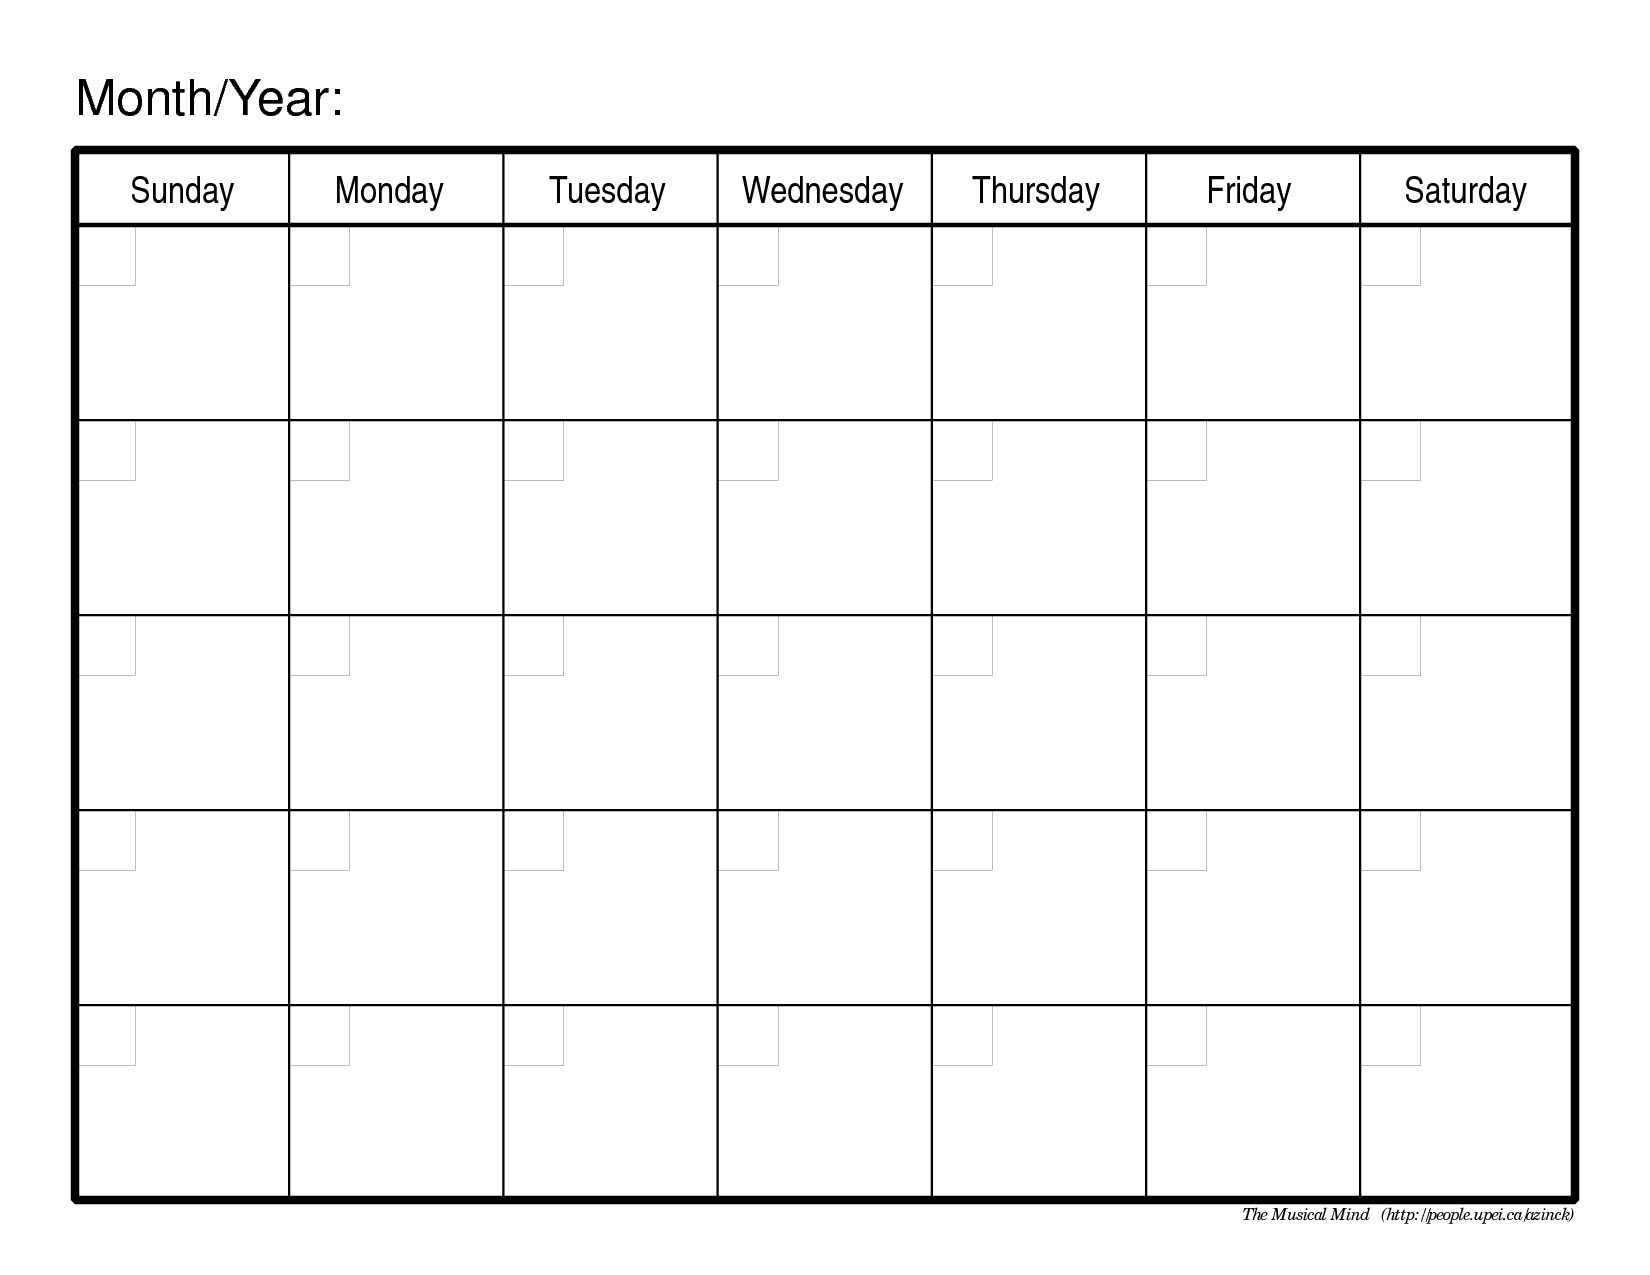 Monthly Calendar Template | Organizing | Monthly Calendar Template intended for Fill In Monthly Calendar Template